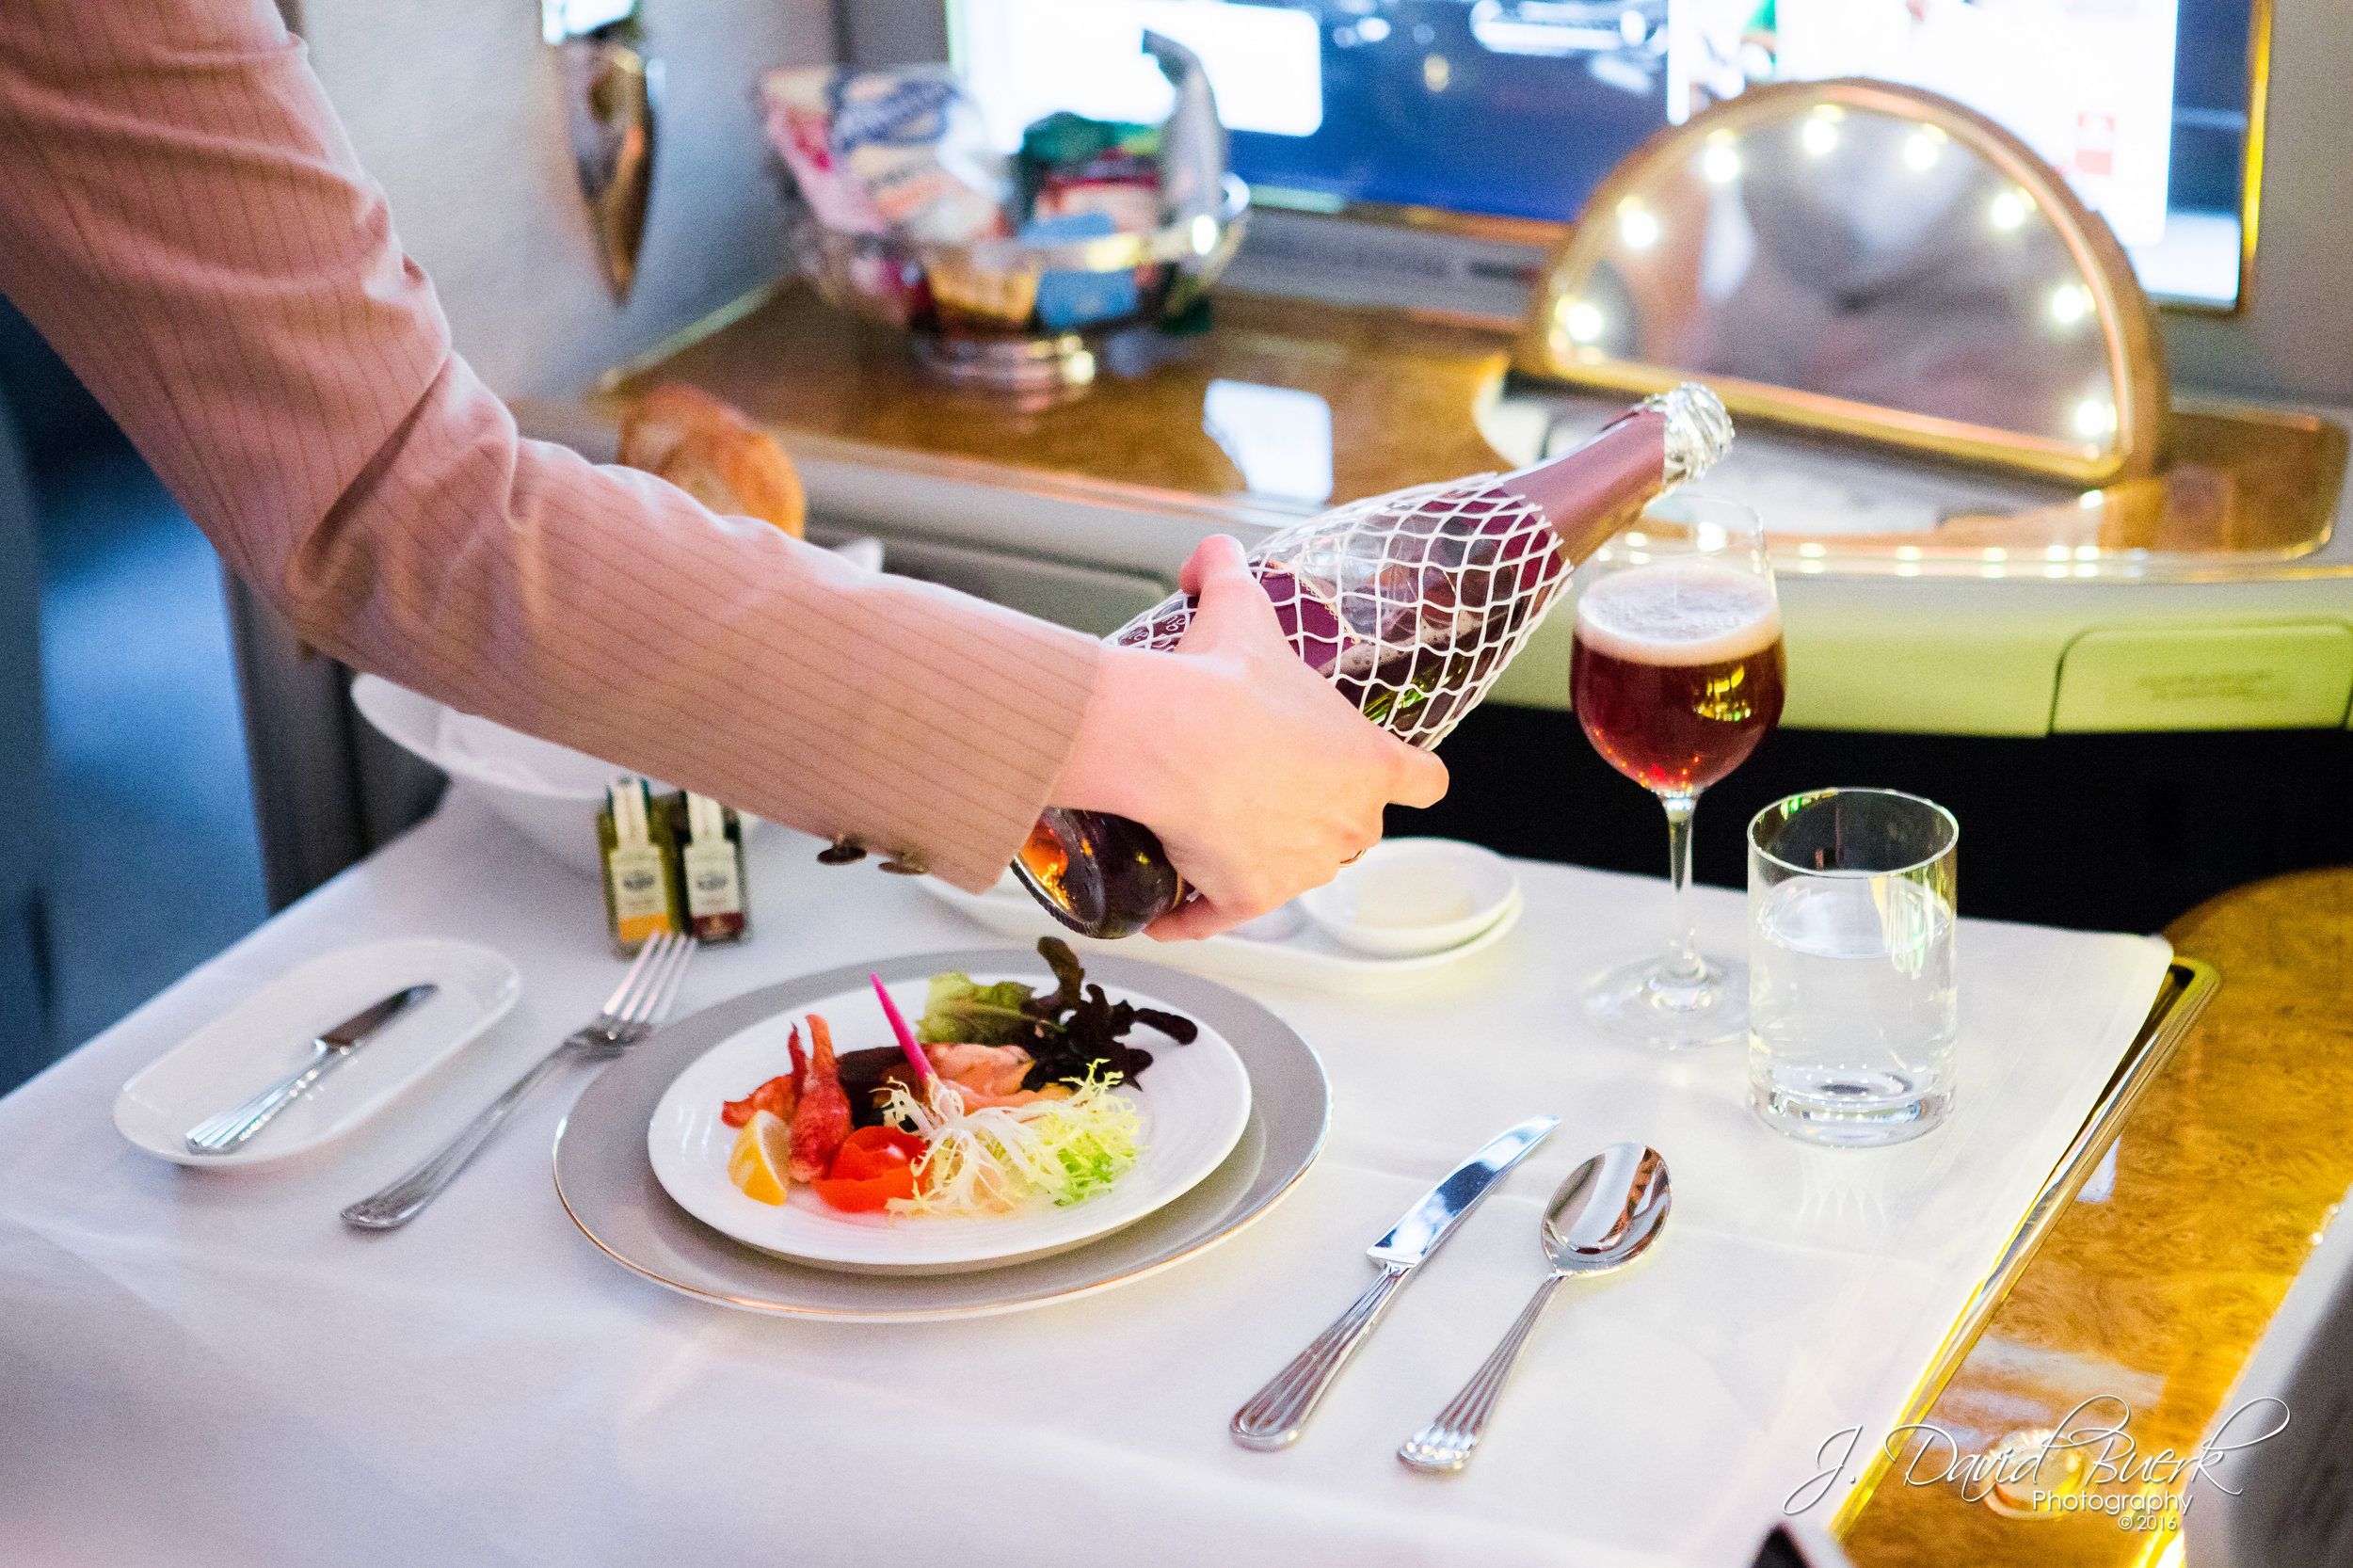 Cabin crew serve champagne in a First Class compartment aboard Emirates' new A380, which began inaugural service between Washington, DC and Dubai on February 23rd, 2016.